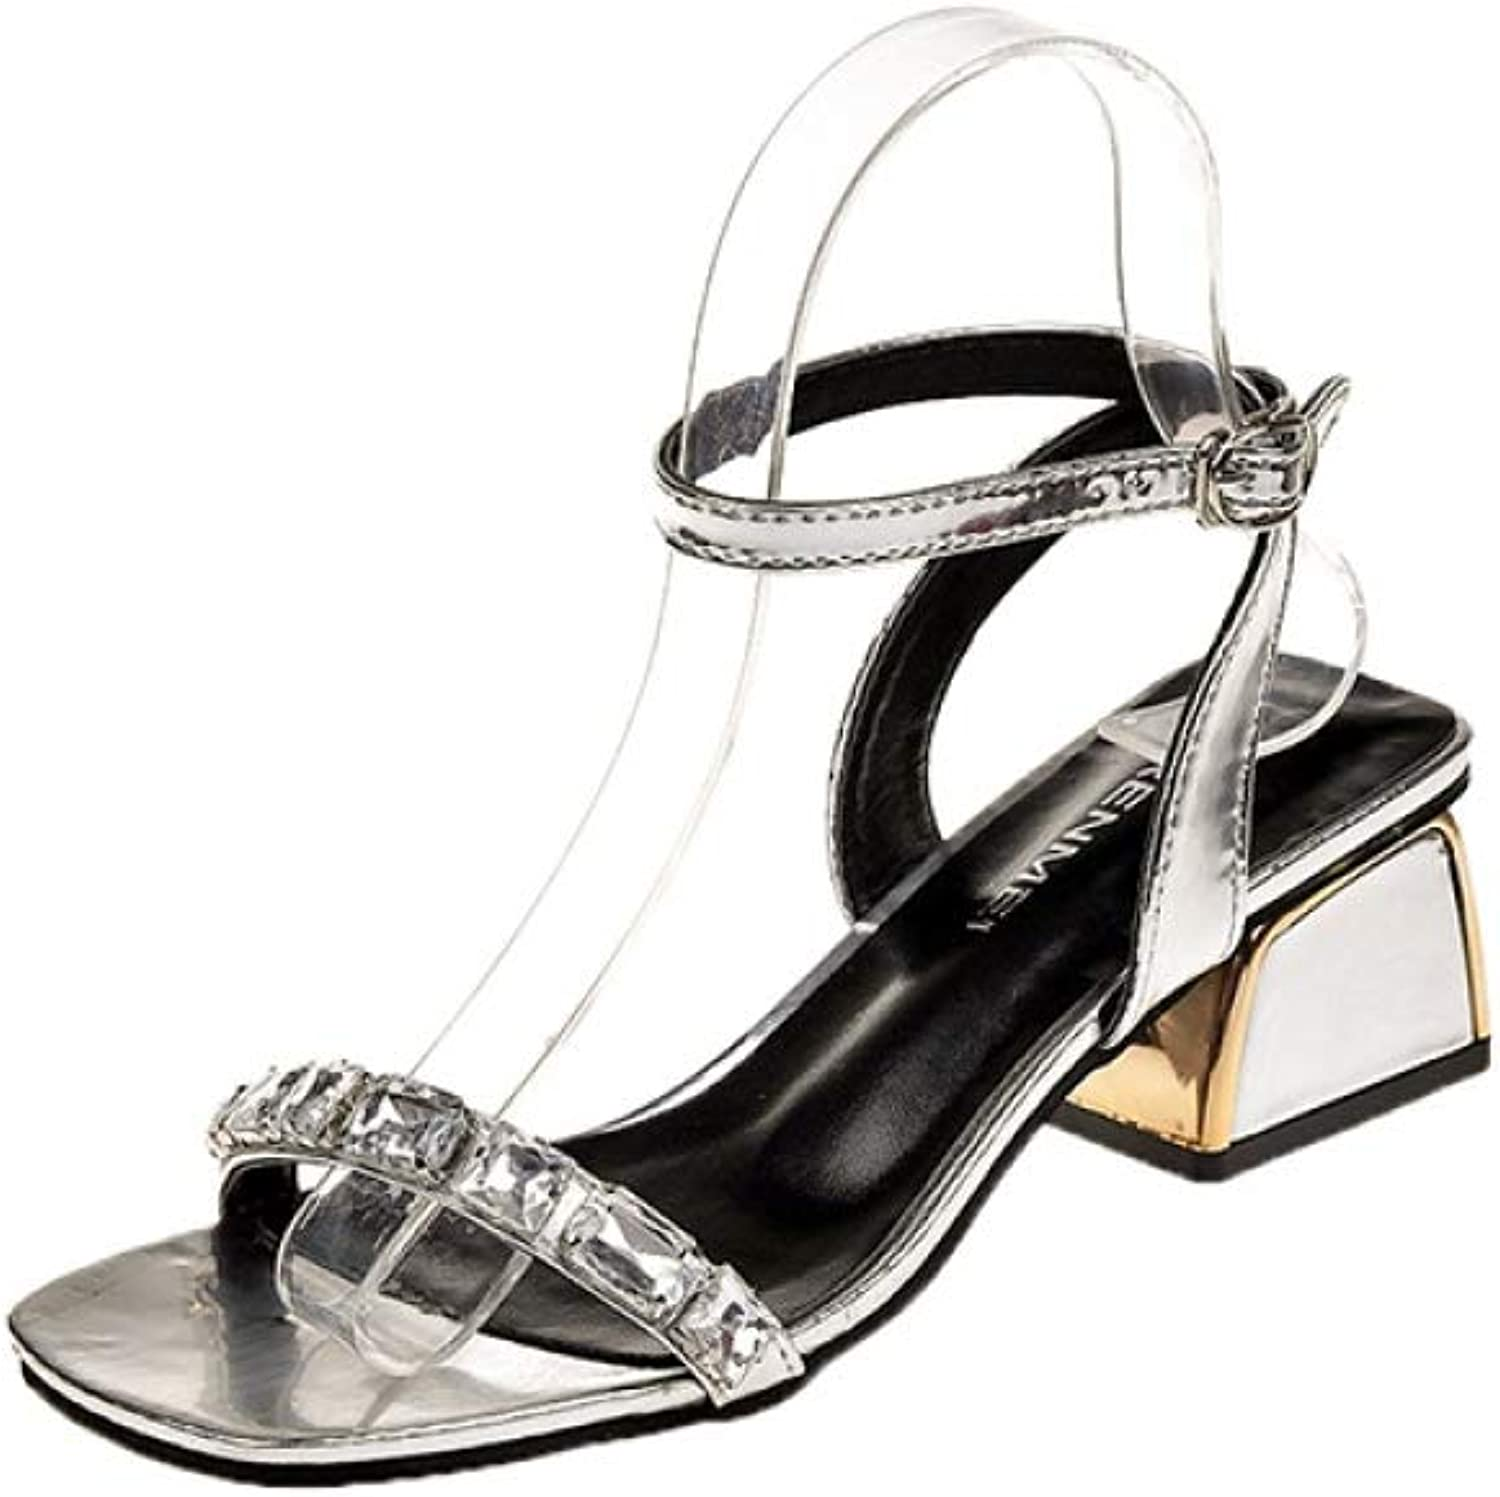 T-JULY Leisure Elegant shoes Summer Sandals Crystals Square Heels Ankle-Strap Women's shoes Sandals Woman